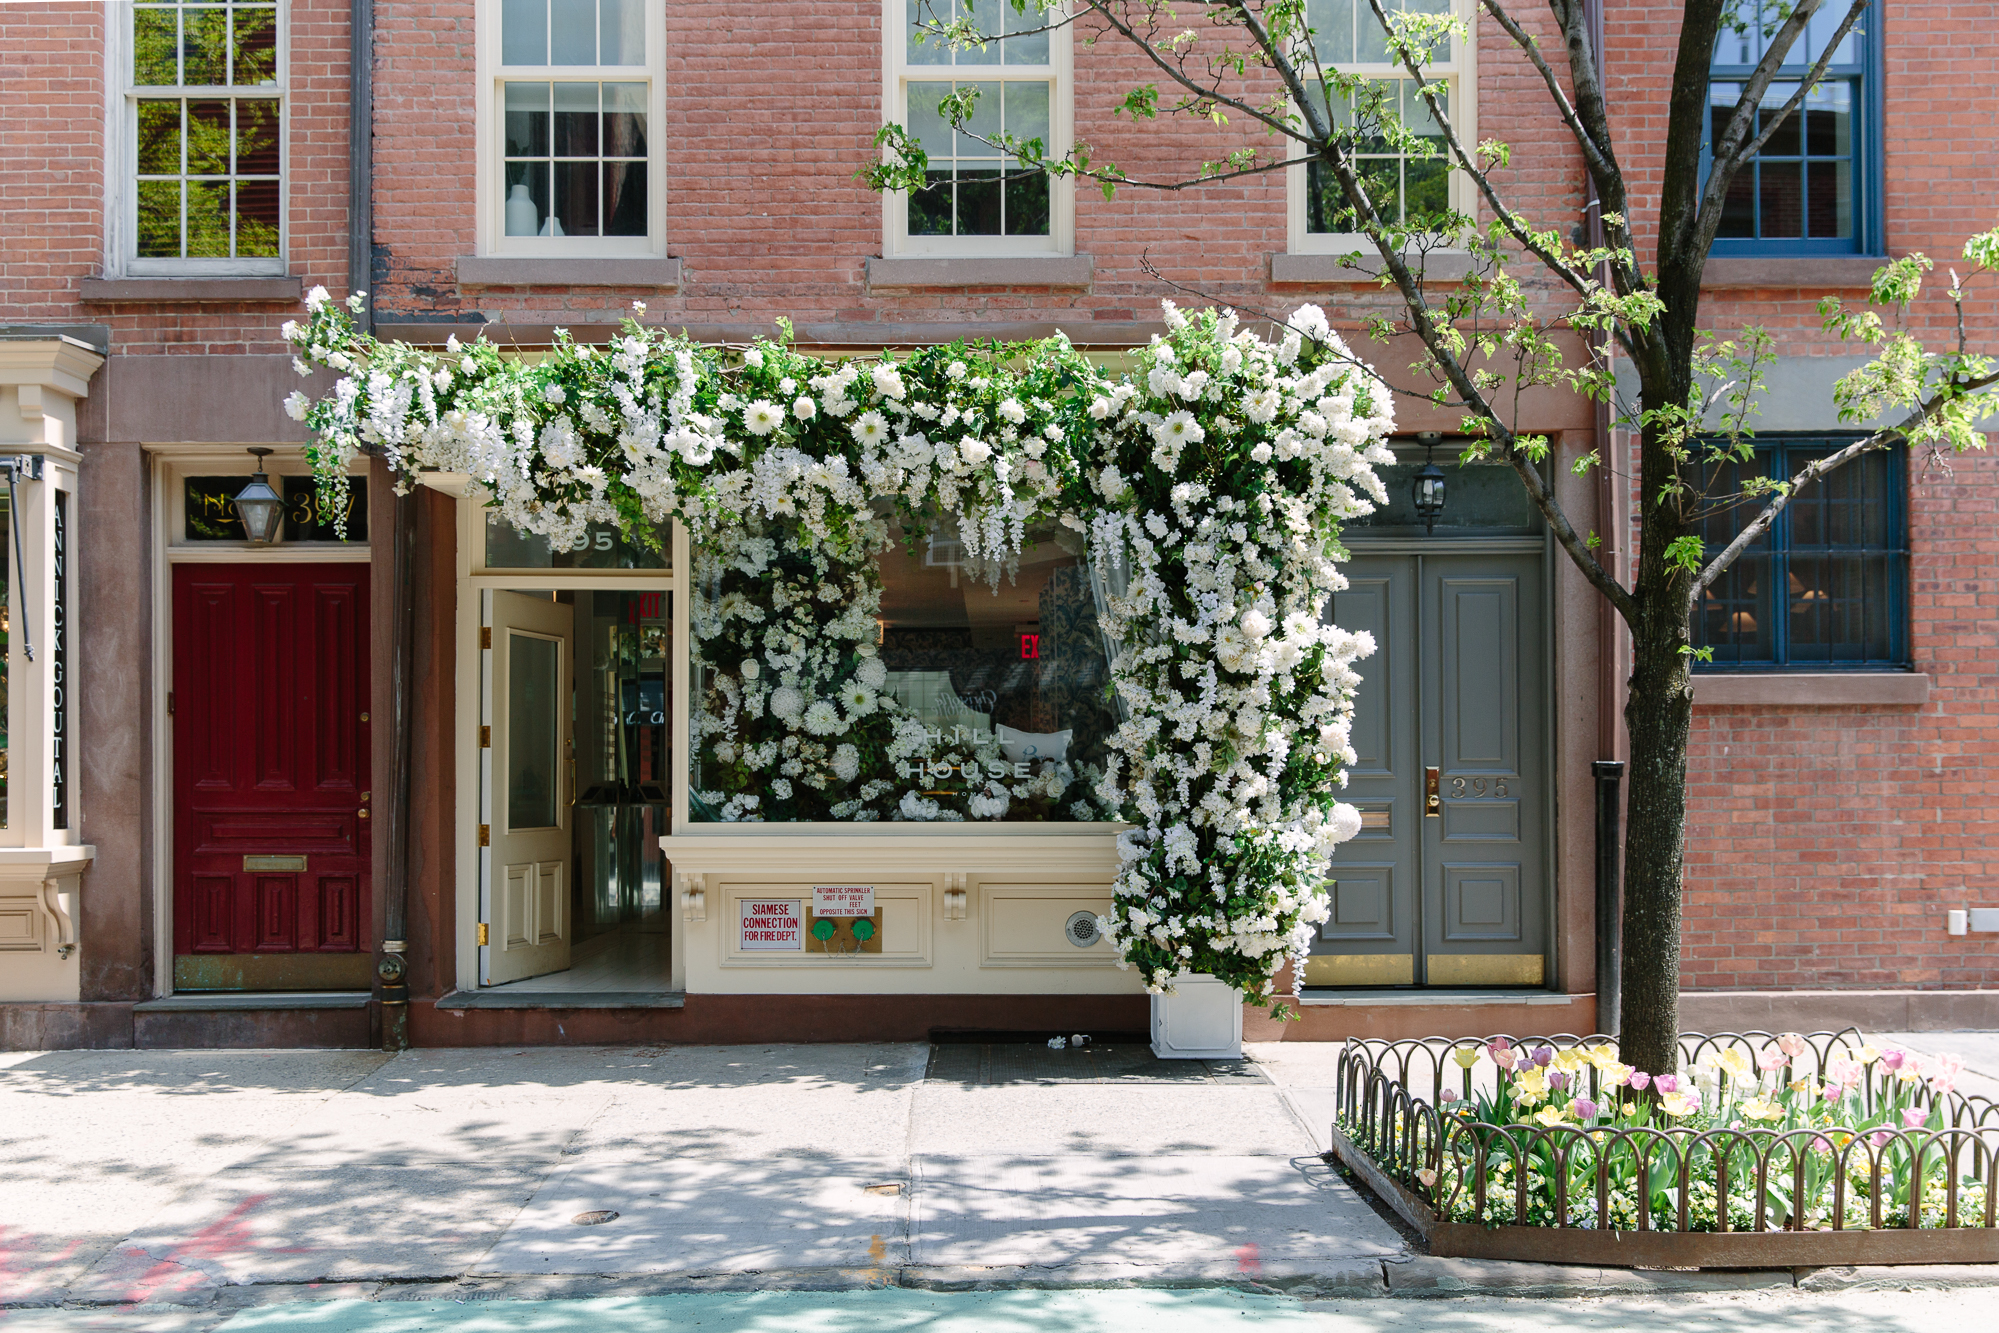 Hill House Home West Village spring floral installation